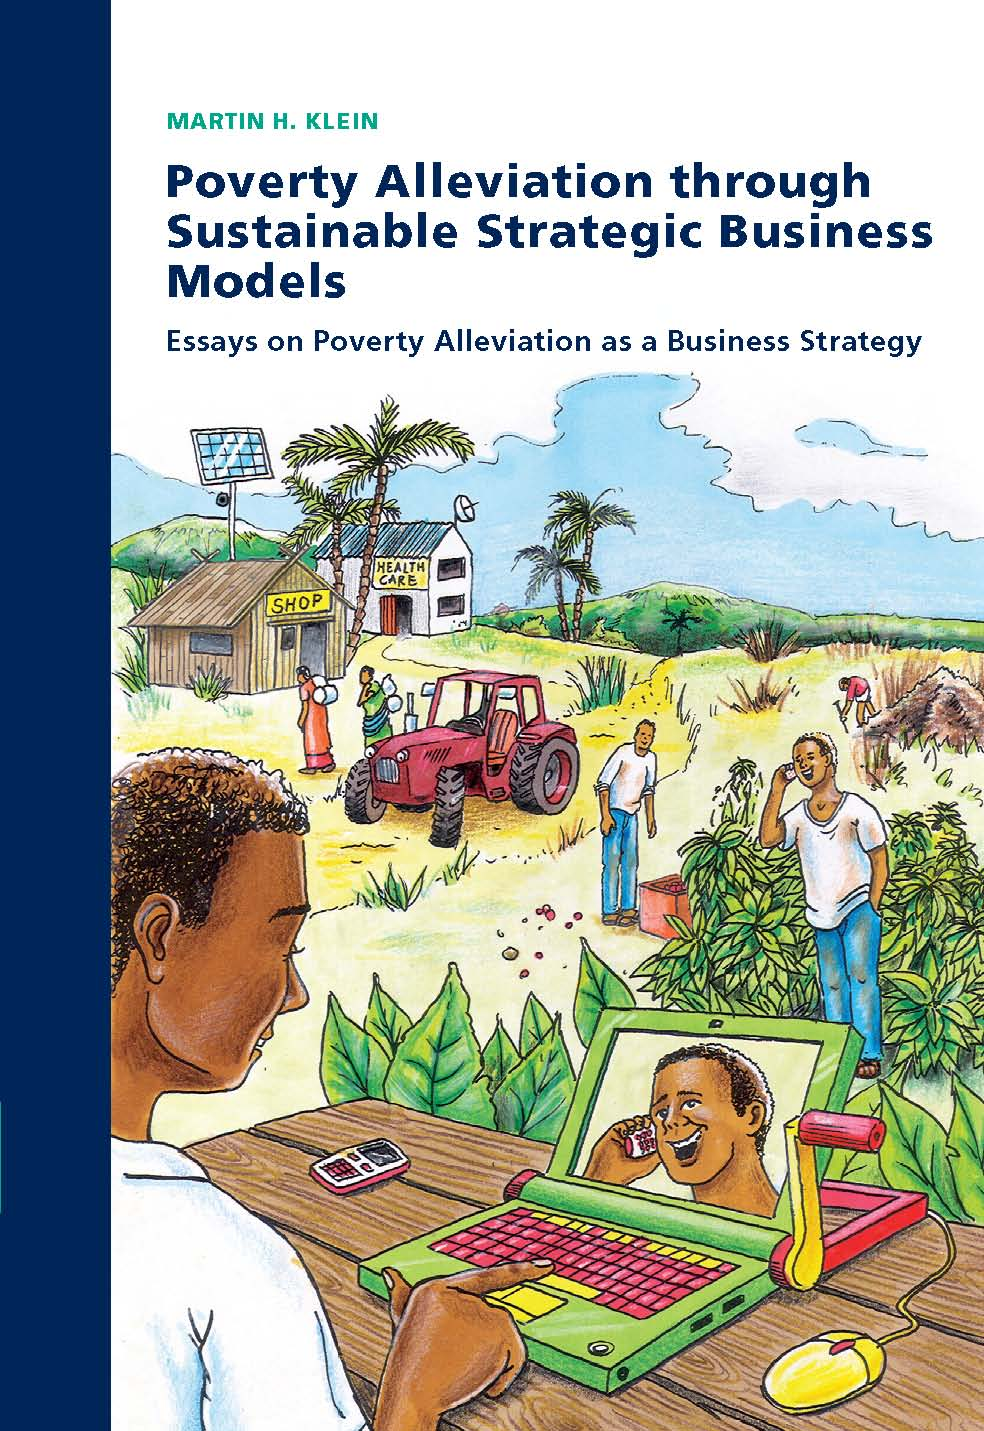 Poverty Alleviation through Sustainable Strategic Business Models: Essays on Poverty Alleviation as a Business Strategy